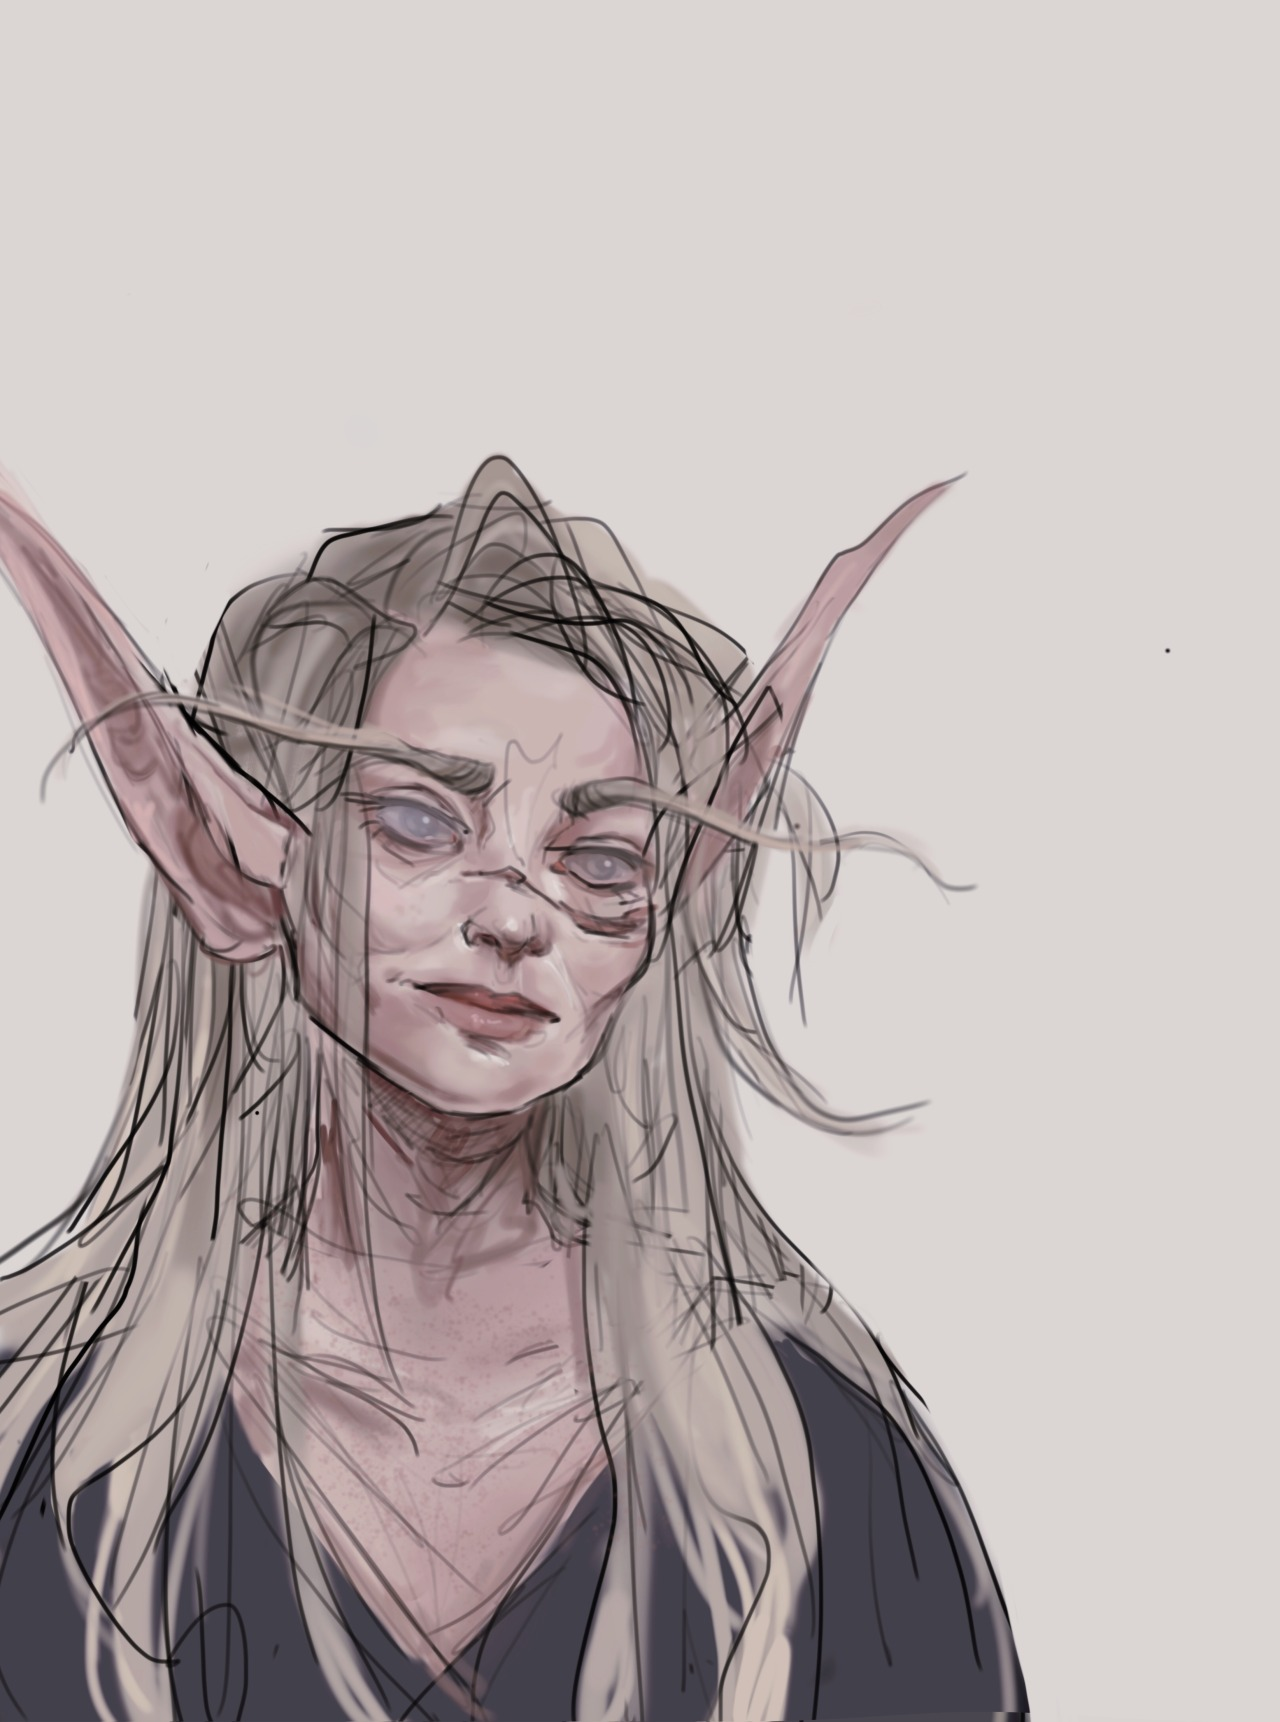 sorry for the repost, the video quality got baaad  ;;-;;   I wish I always had the time and energy to draw my older oc's age appropriately! they don't deserve the basic baby faces #wow #world of warcraft #worldofwarcraft#warcraft oc#blood elf#my art